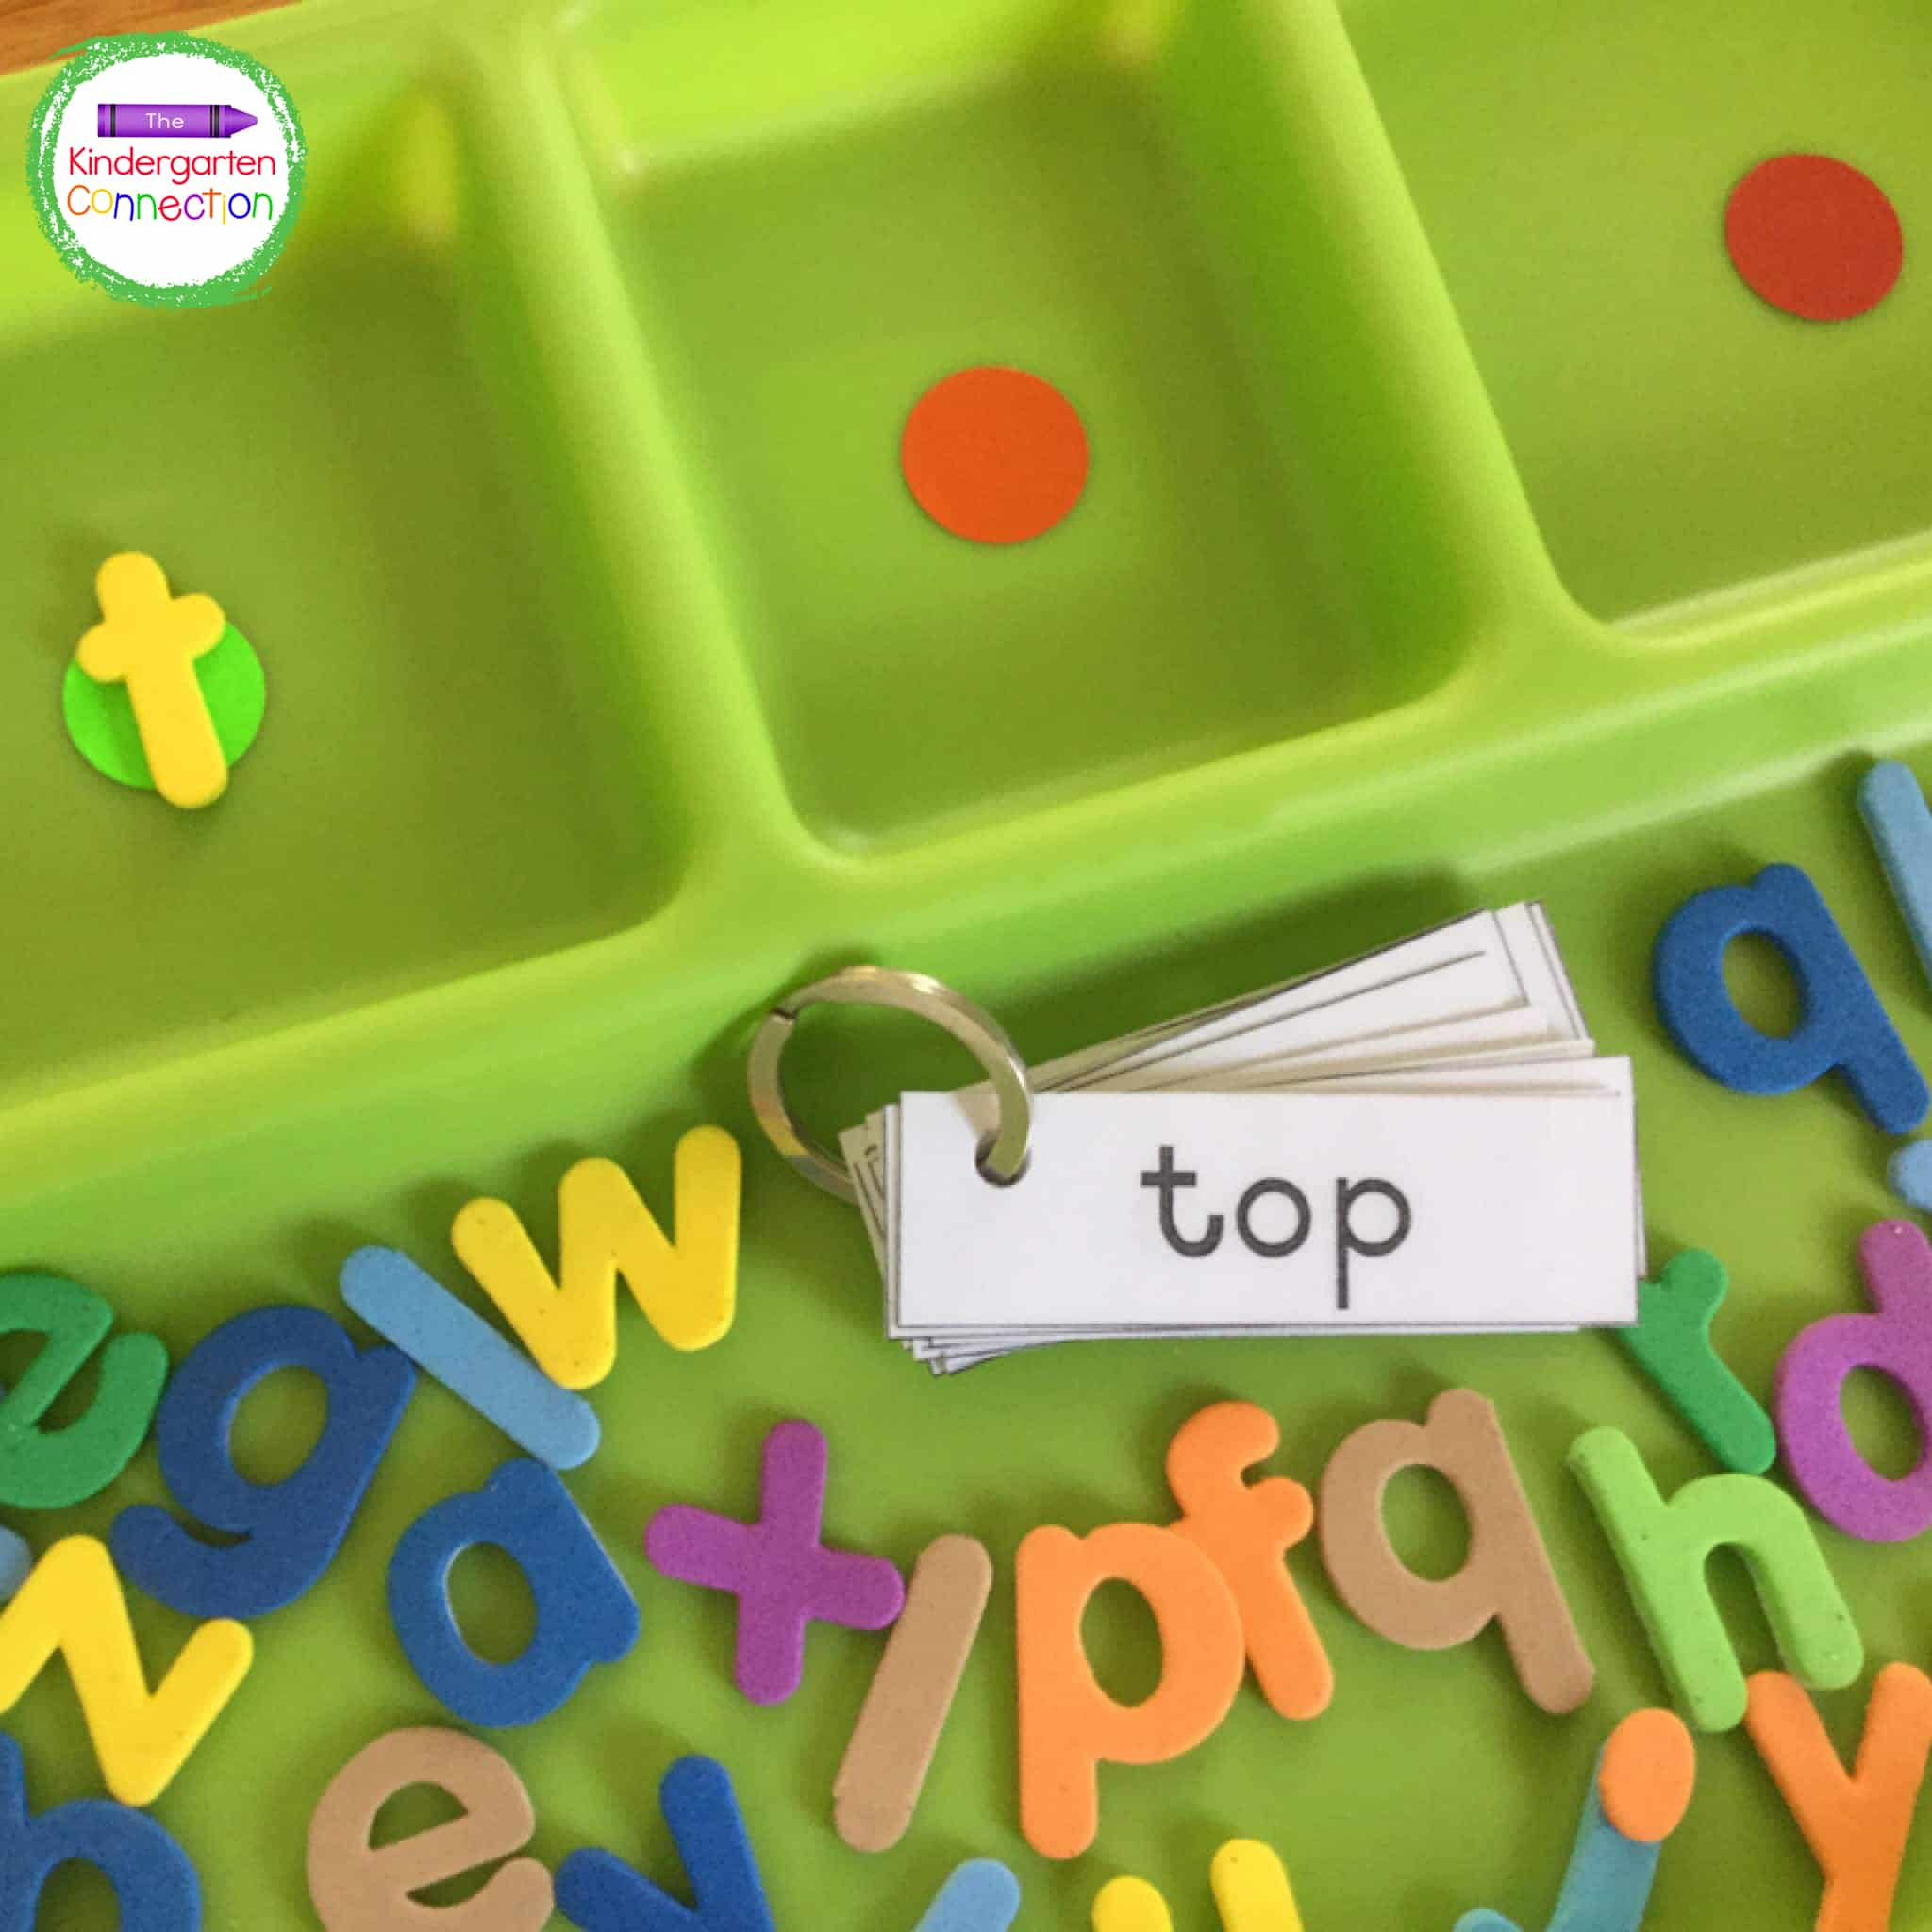 Stickers in the tray compartments signal where to start the word on green, and where to end it, on red.